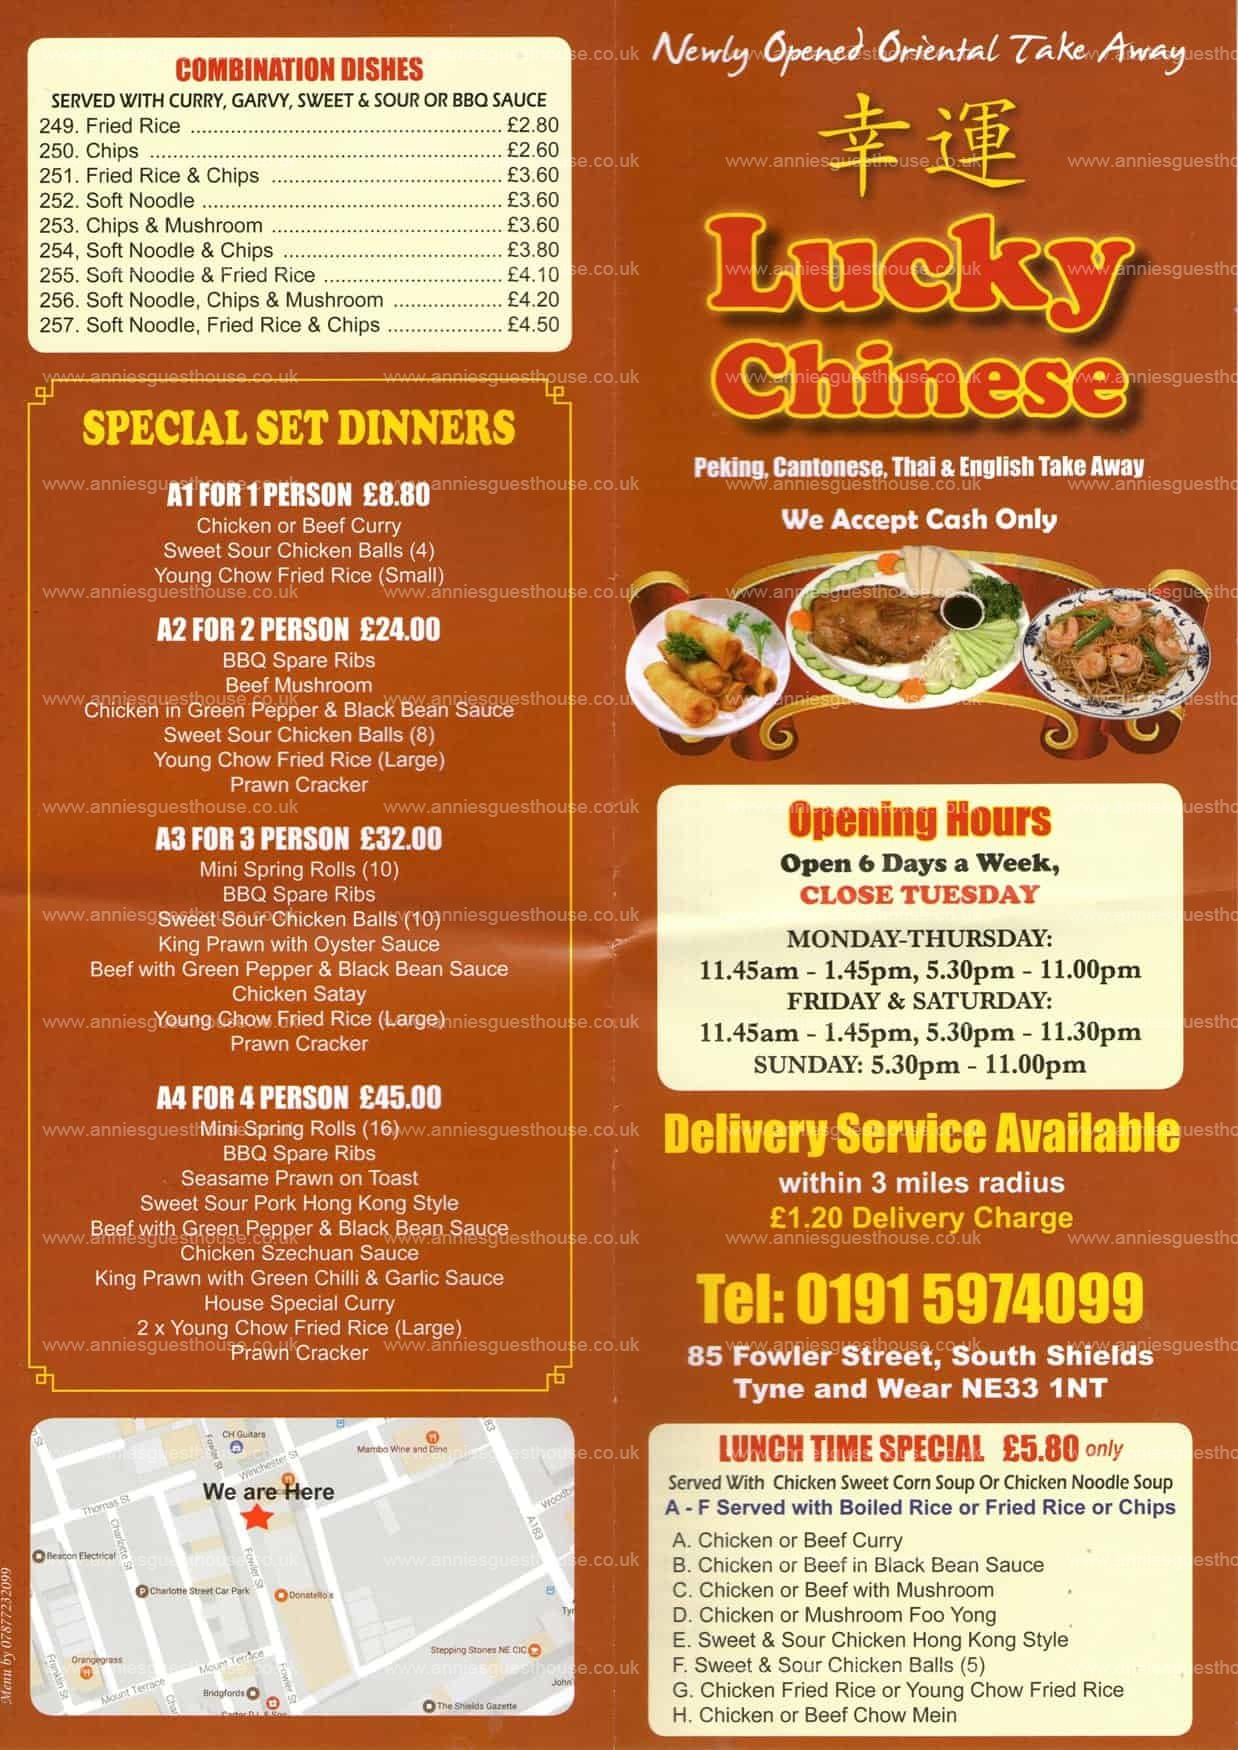 Lucky Chinese 85 Fowler Street South Shields NE33 1NT Menu 1